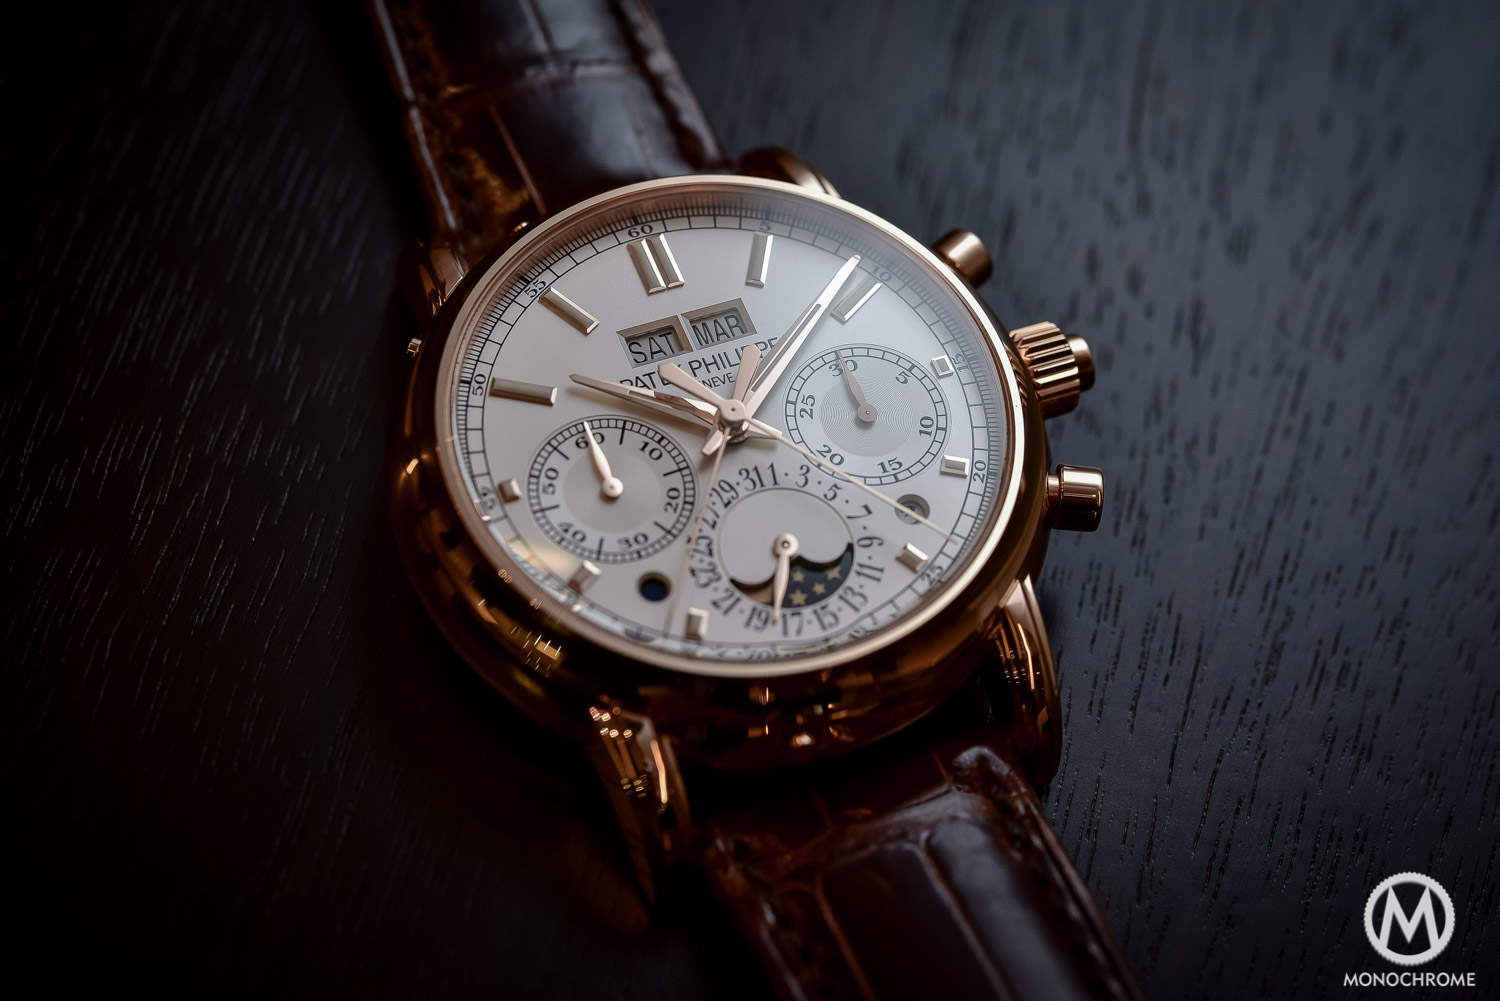 Patek Philippe 5204R Split-Seconds Chronograph Perpetual Calendar - Baselworld 2016 - 7